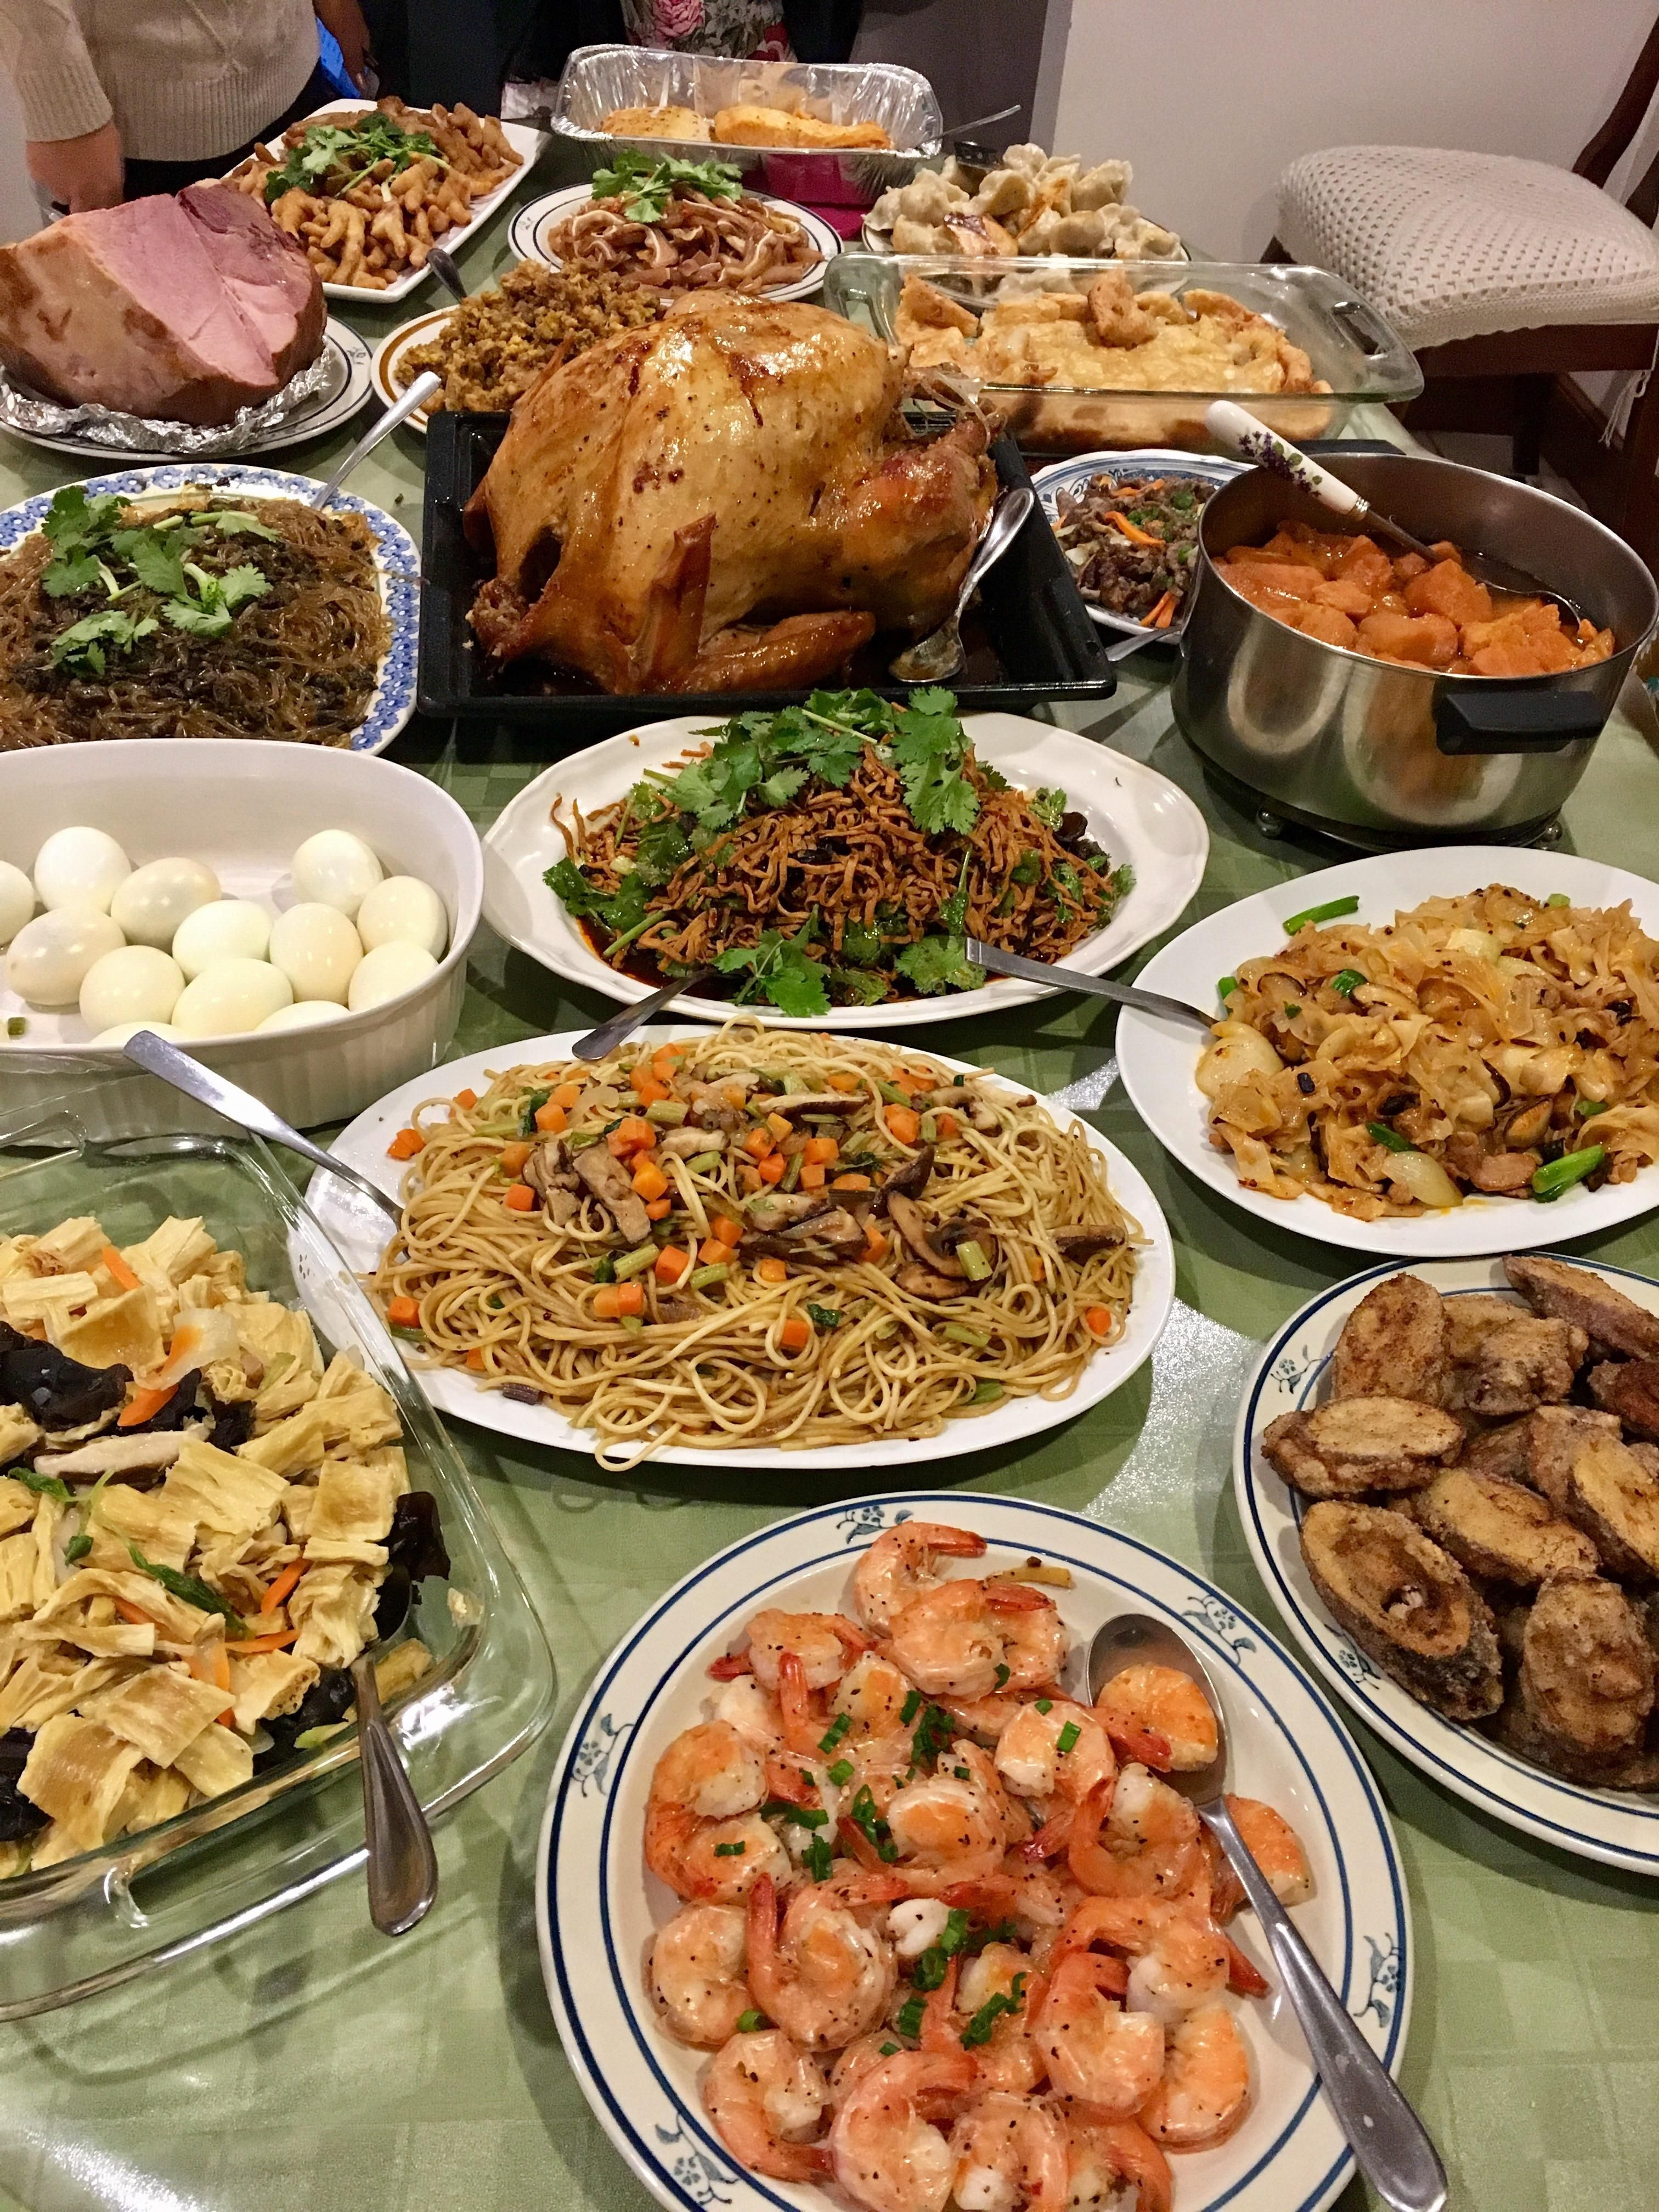 Homemade Chinese Thanksgiving In 2020 Buffet Food Food Snapchat Party Food Buffet